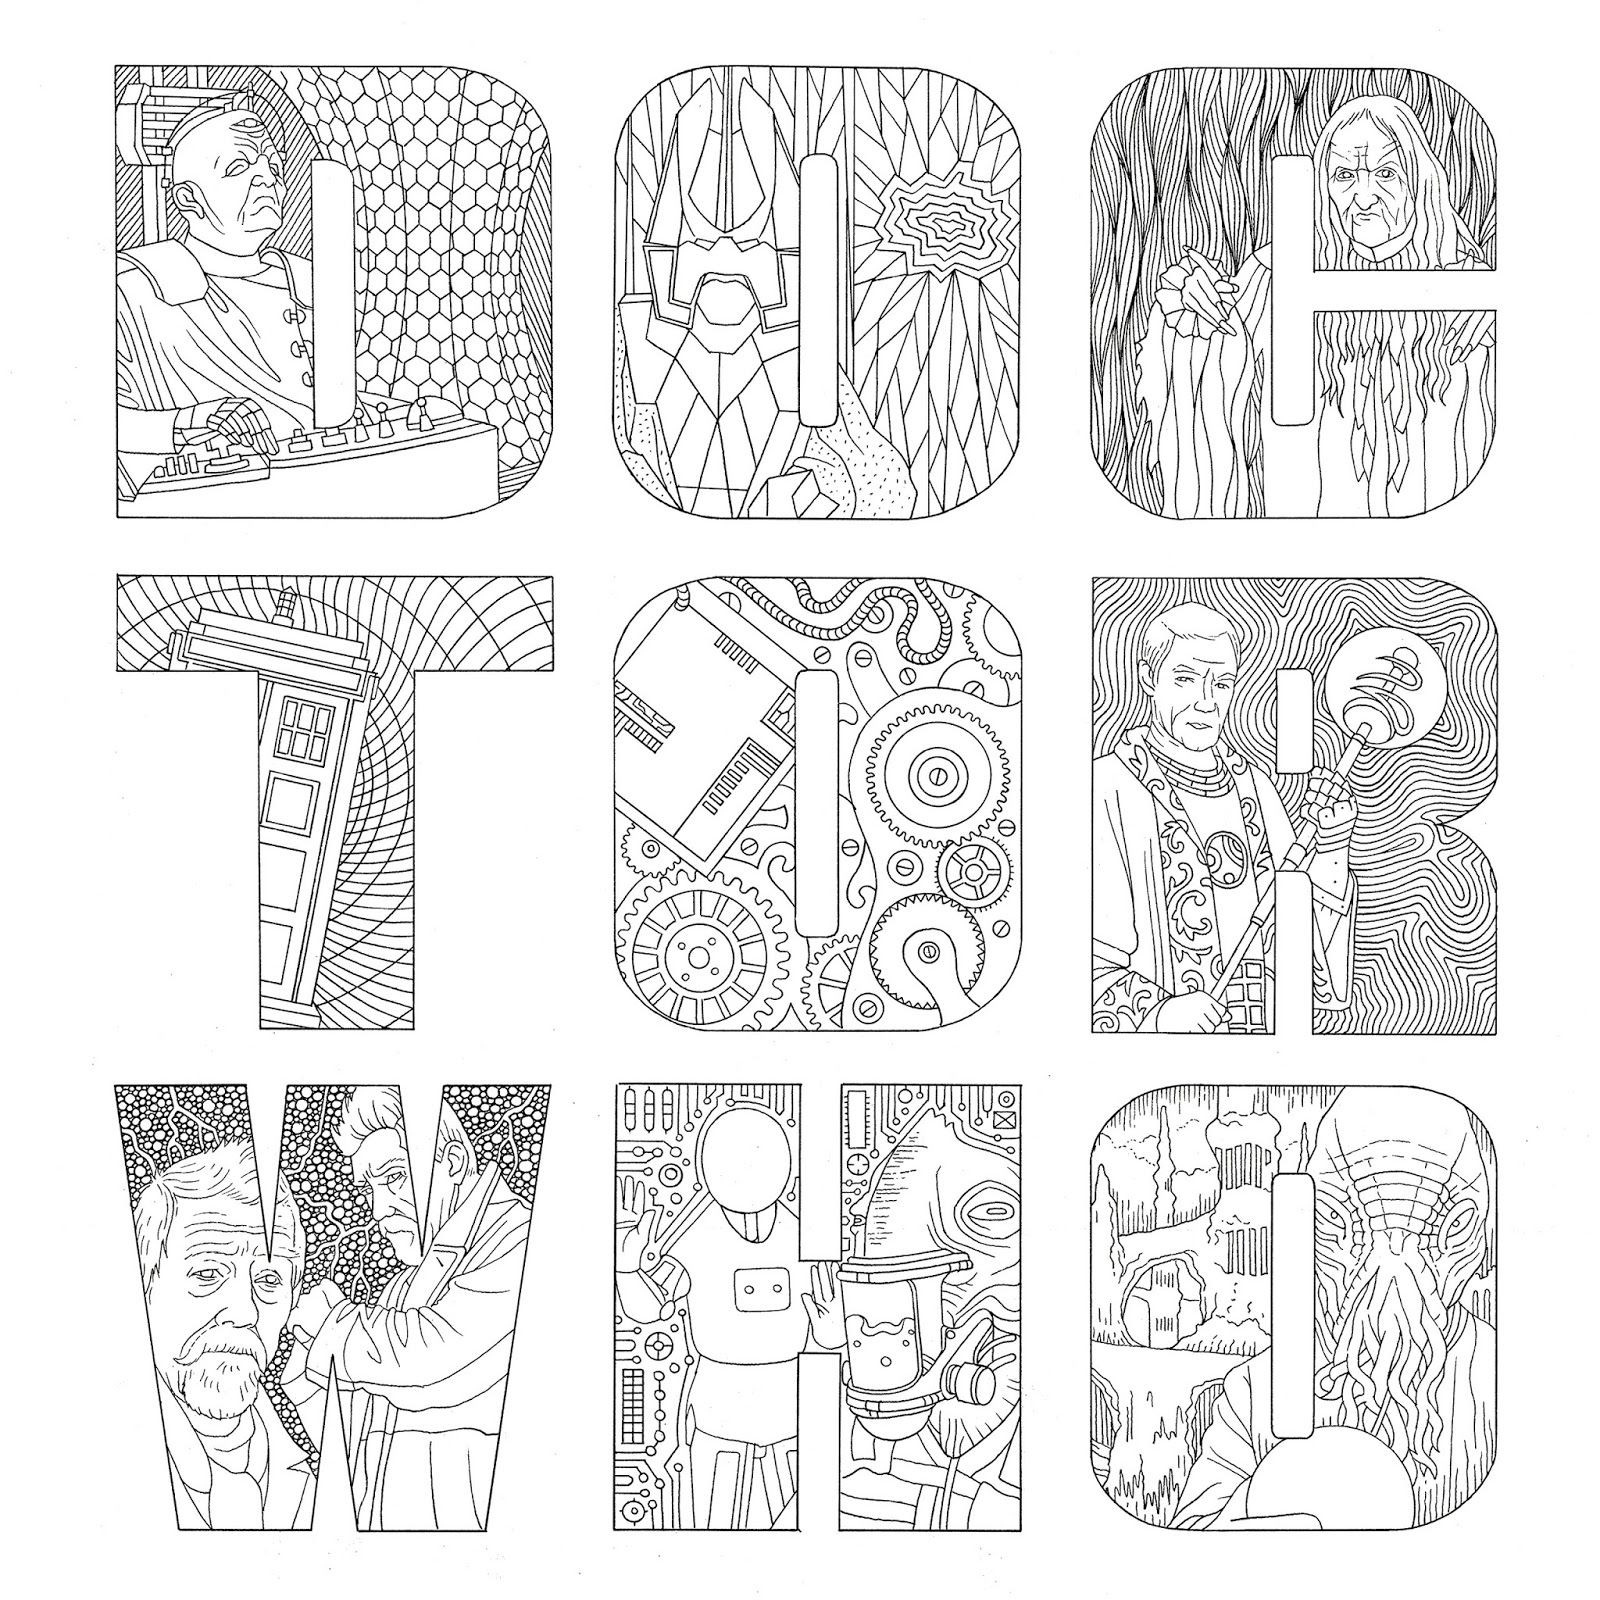 Doctor Who Coloring Book Pages  Doctor Who Coloring Pages Coloring Home